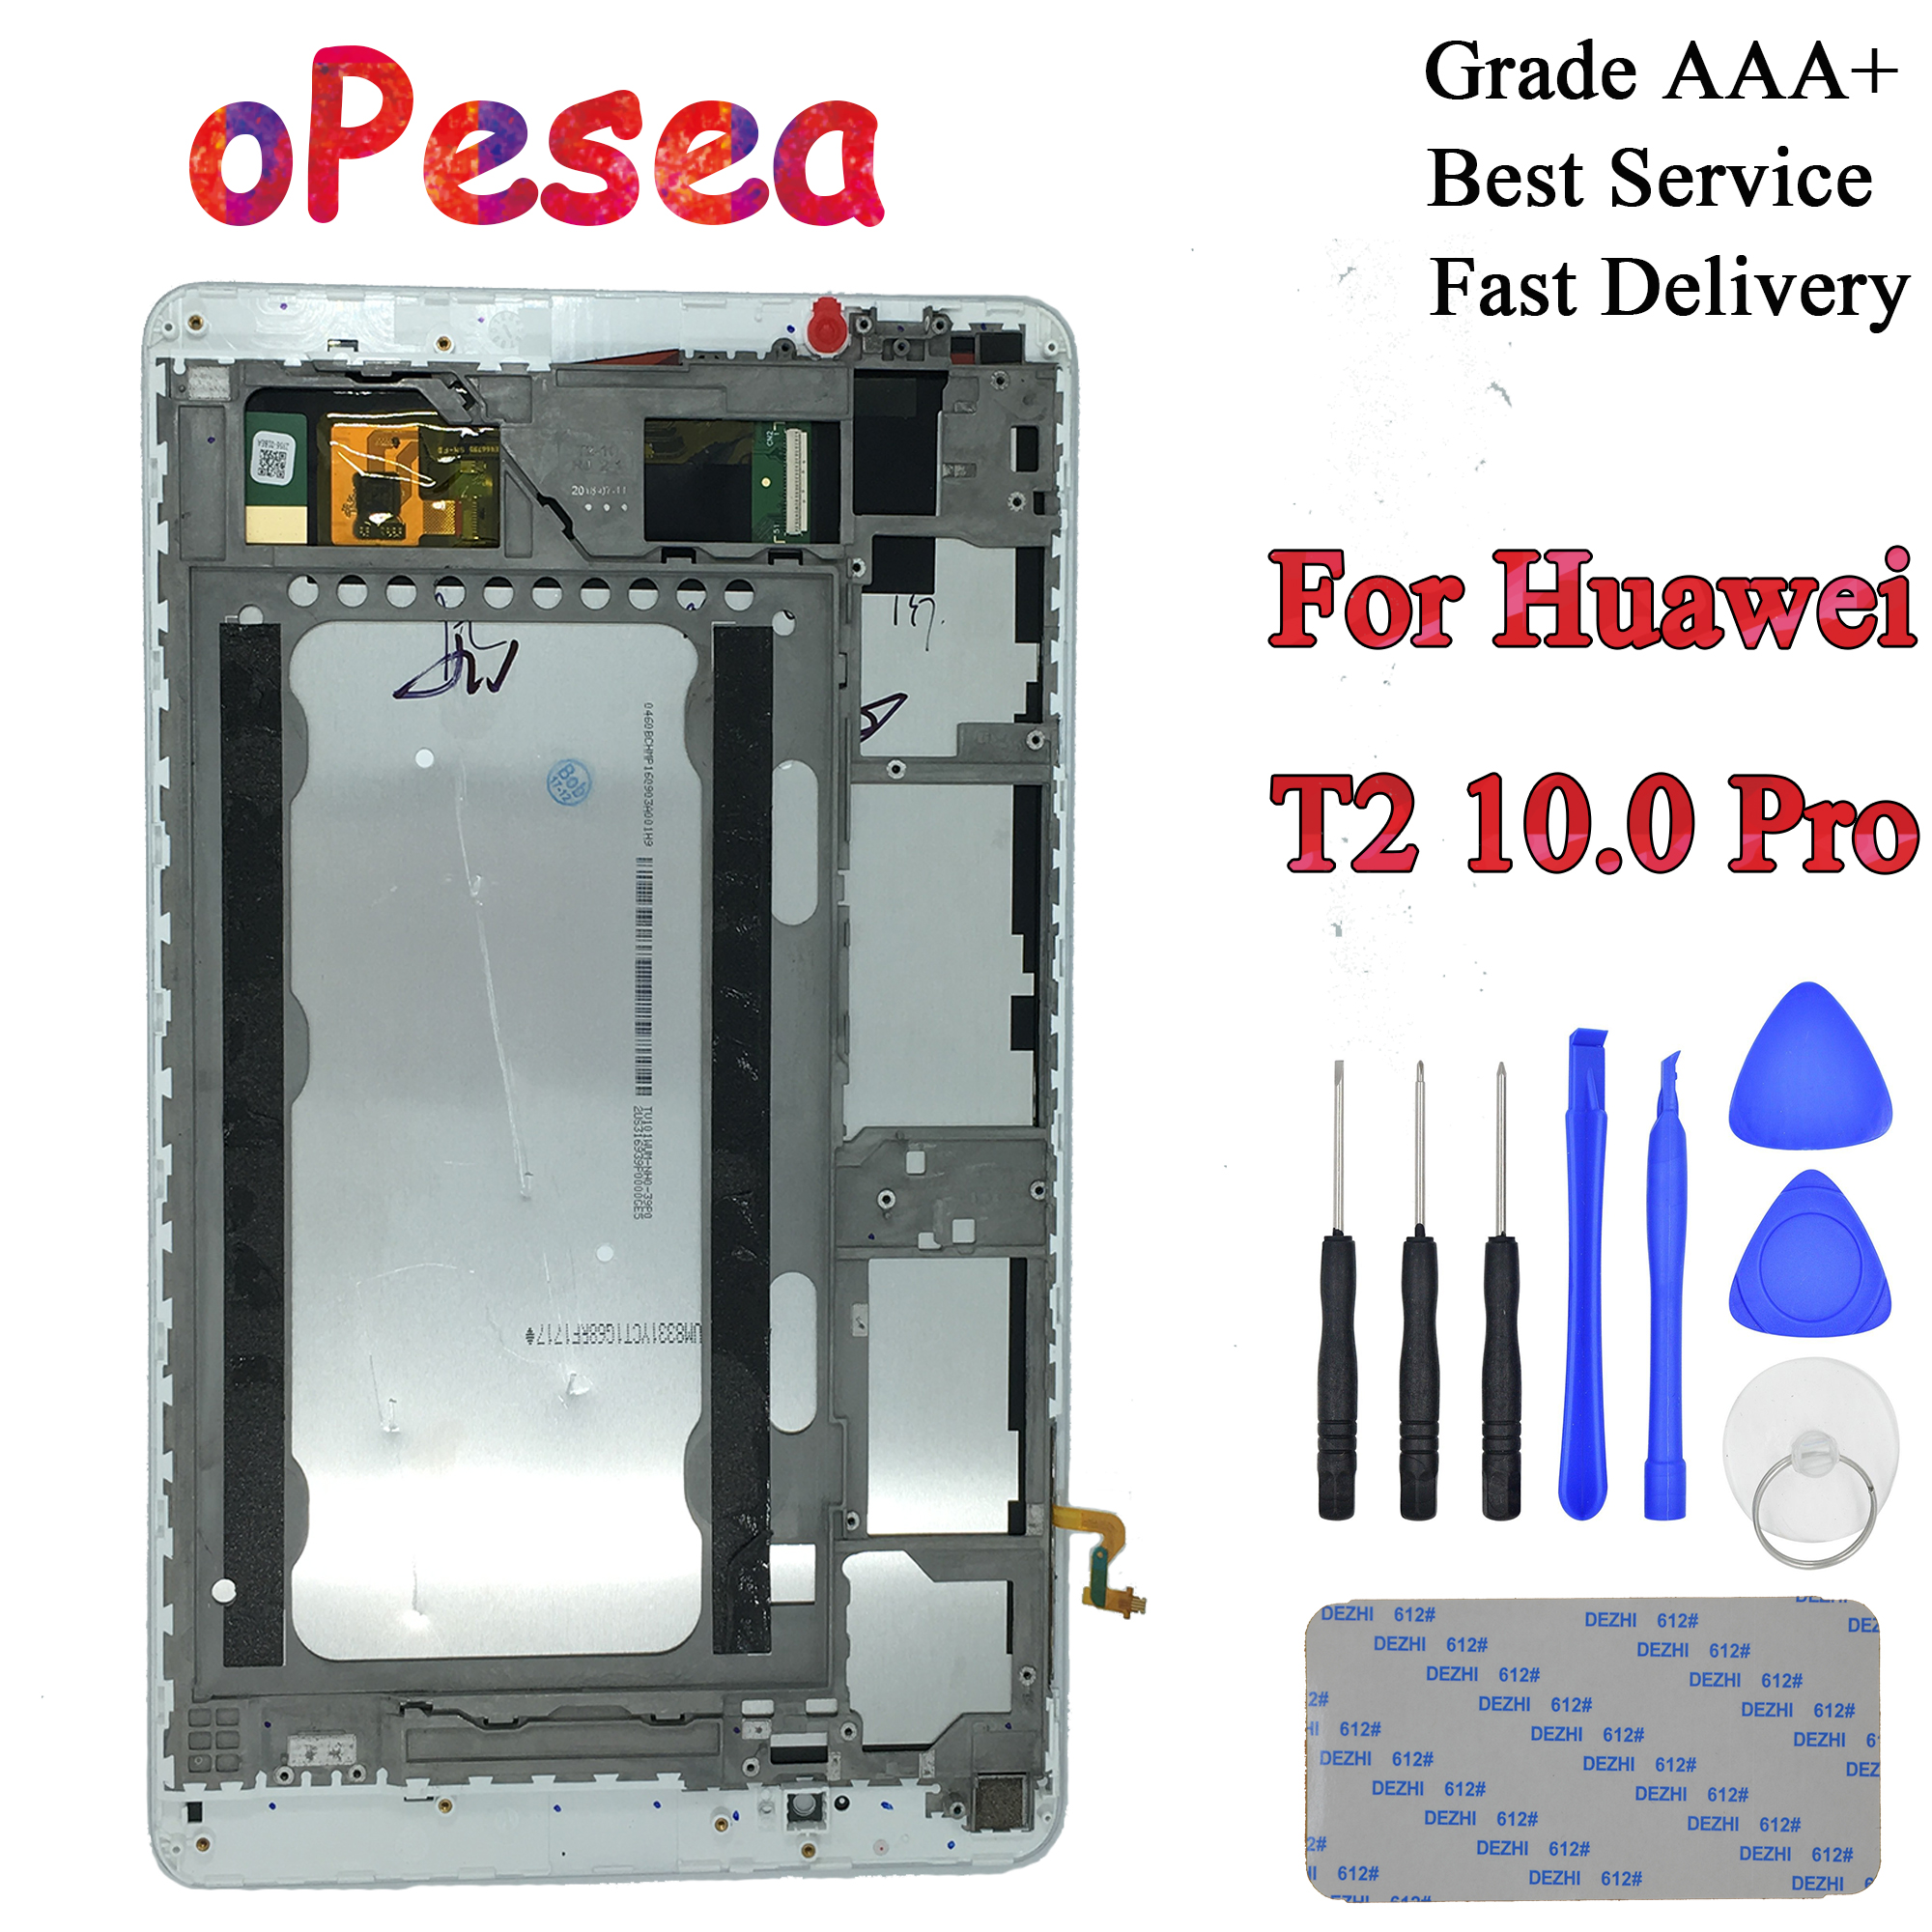 For Huawei MediaPad T2 10.0 Pro FDR-A01L FDR-A01W FDR-A03 LCD Display Panel Touch Screen Digitizer Glass Assembly + Frame image